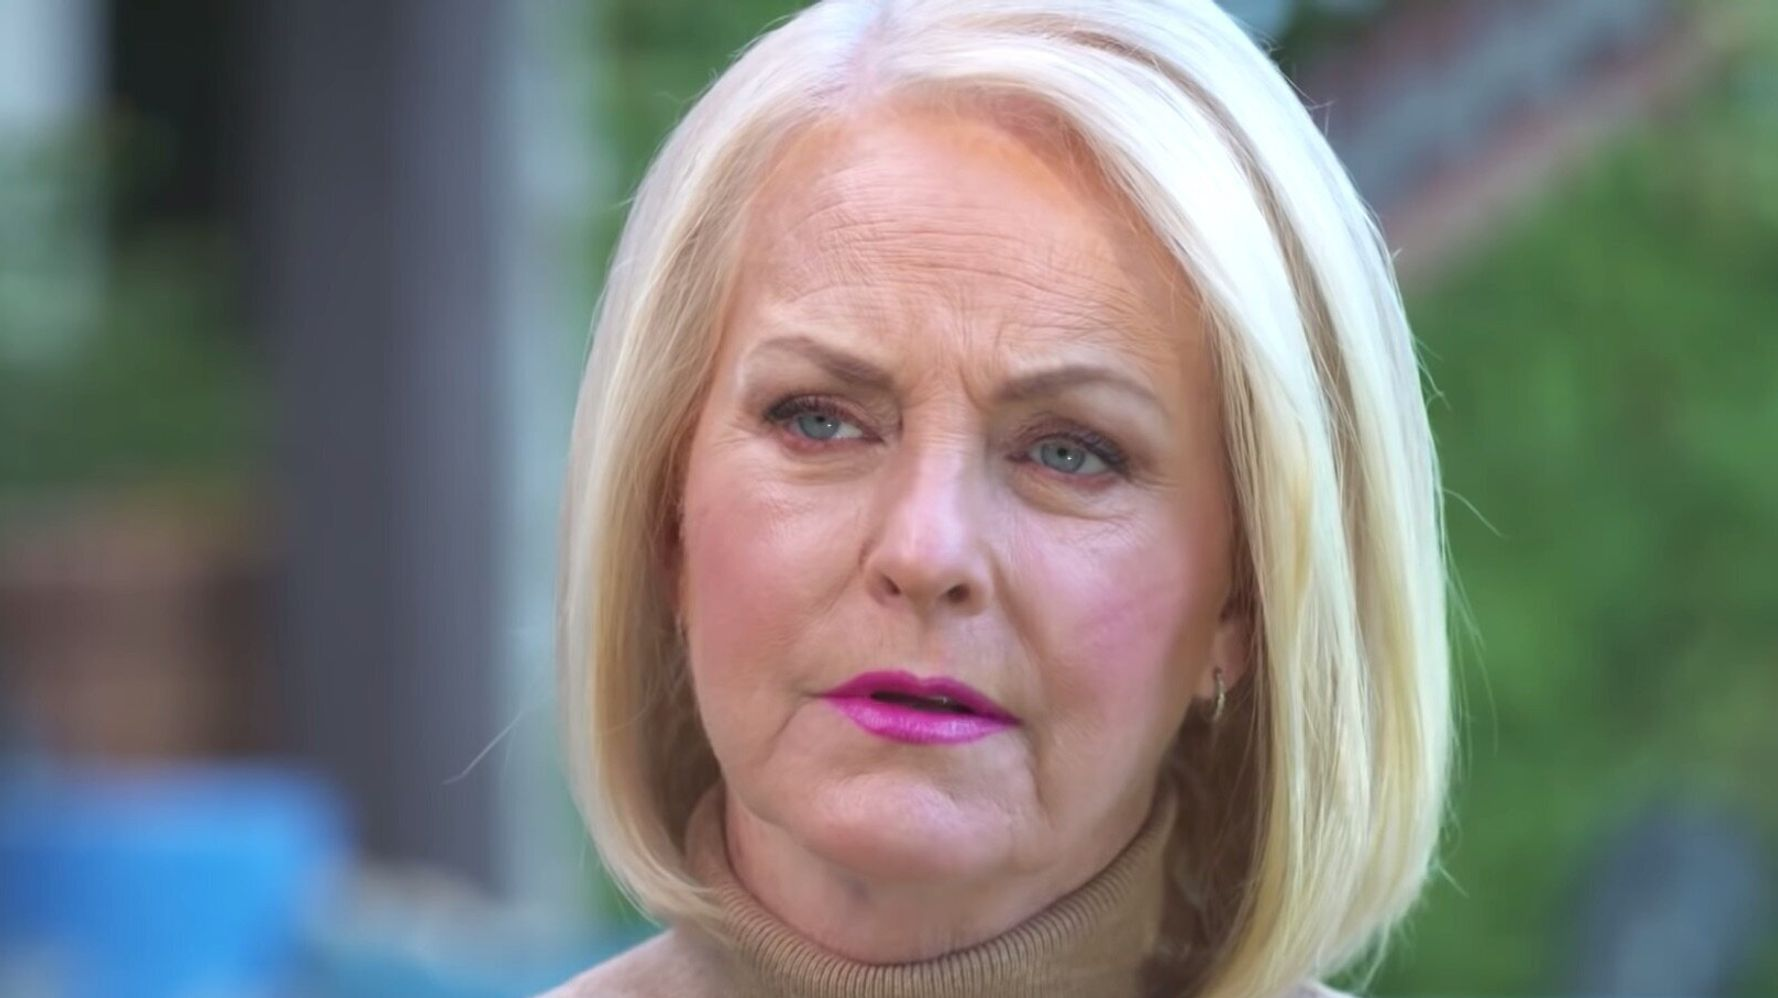 Cindy McCain Reveals 'The Final Straw' With Trump That Led To Biden Endorsement